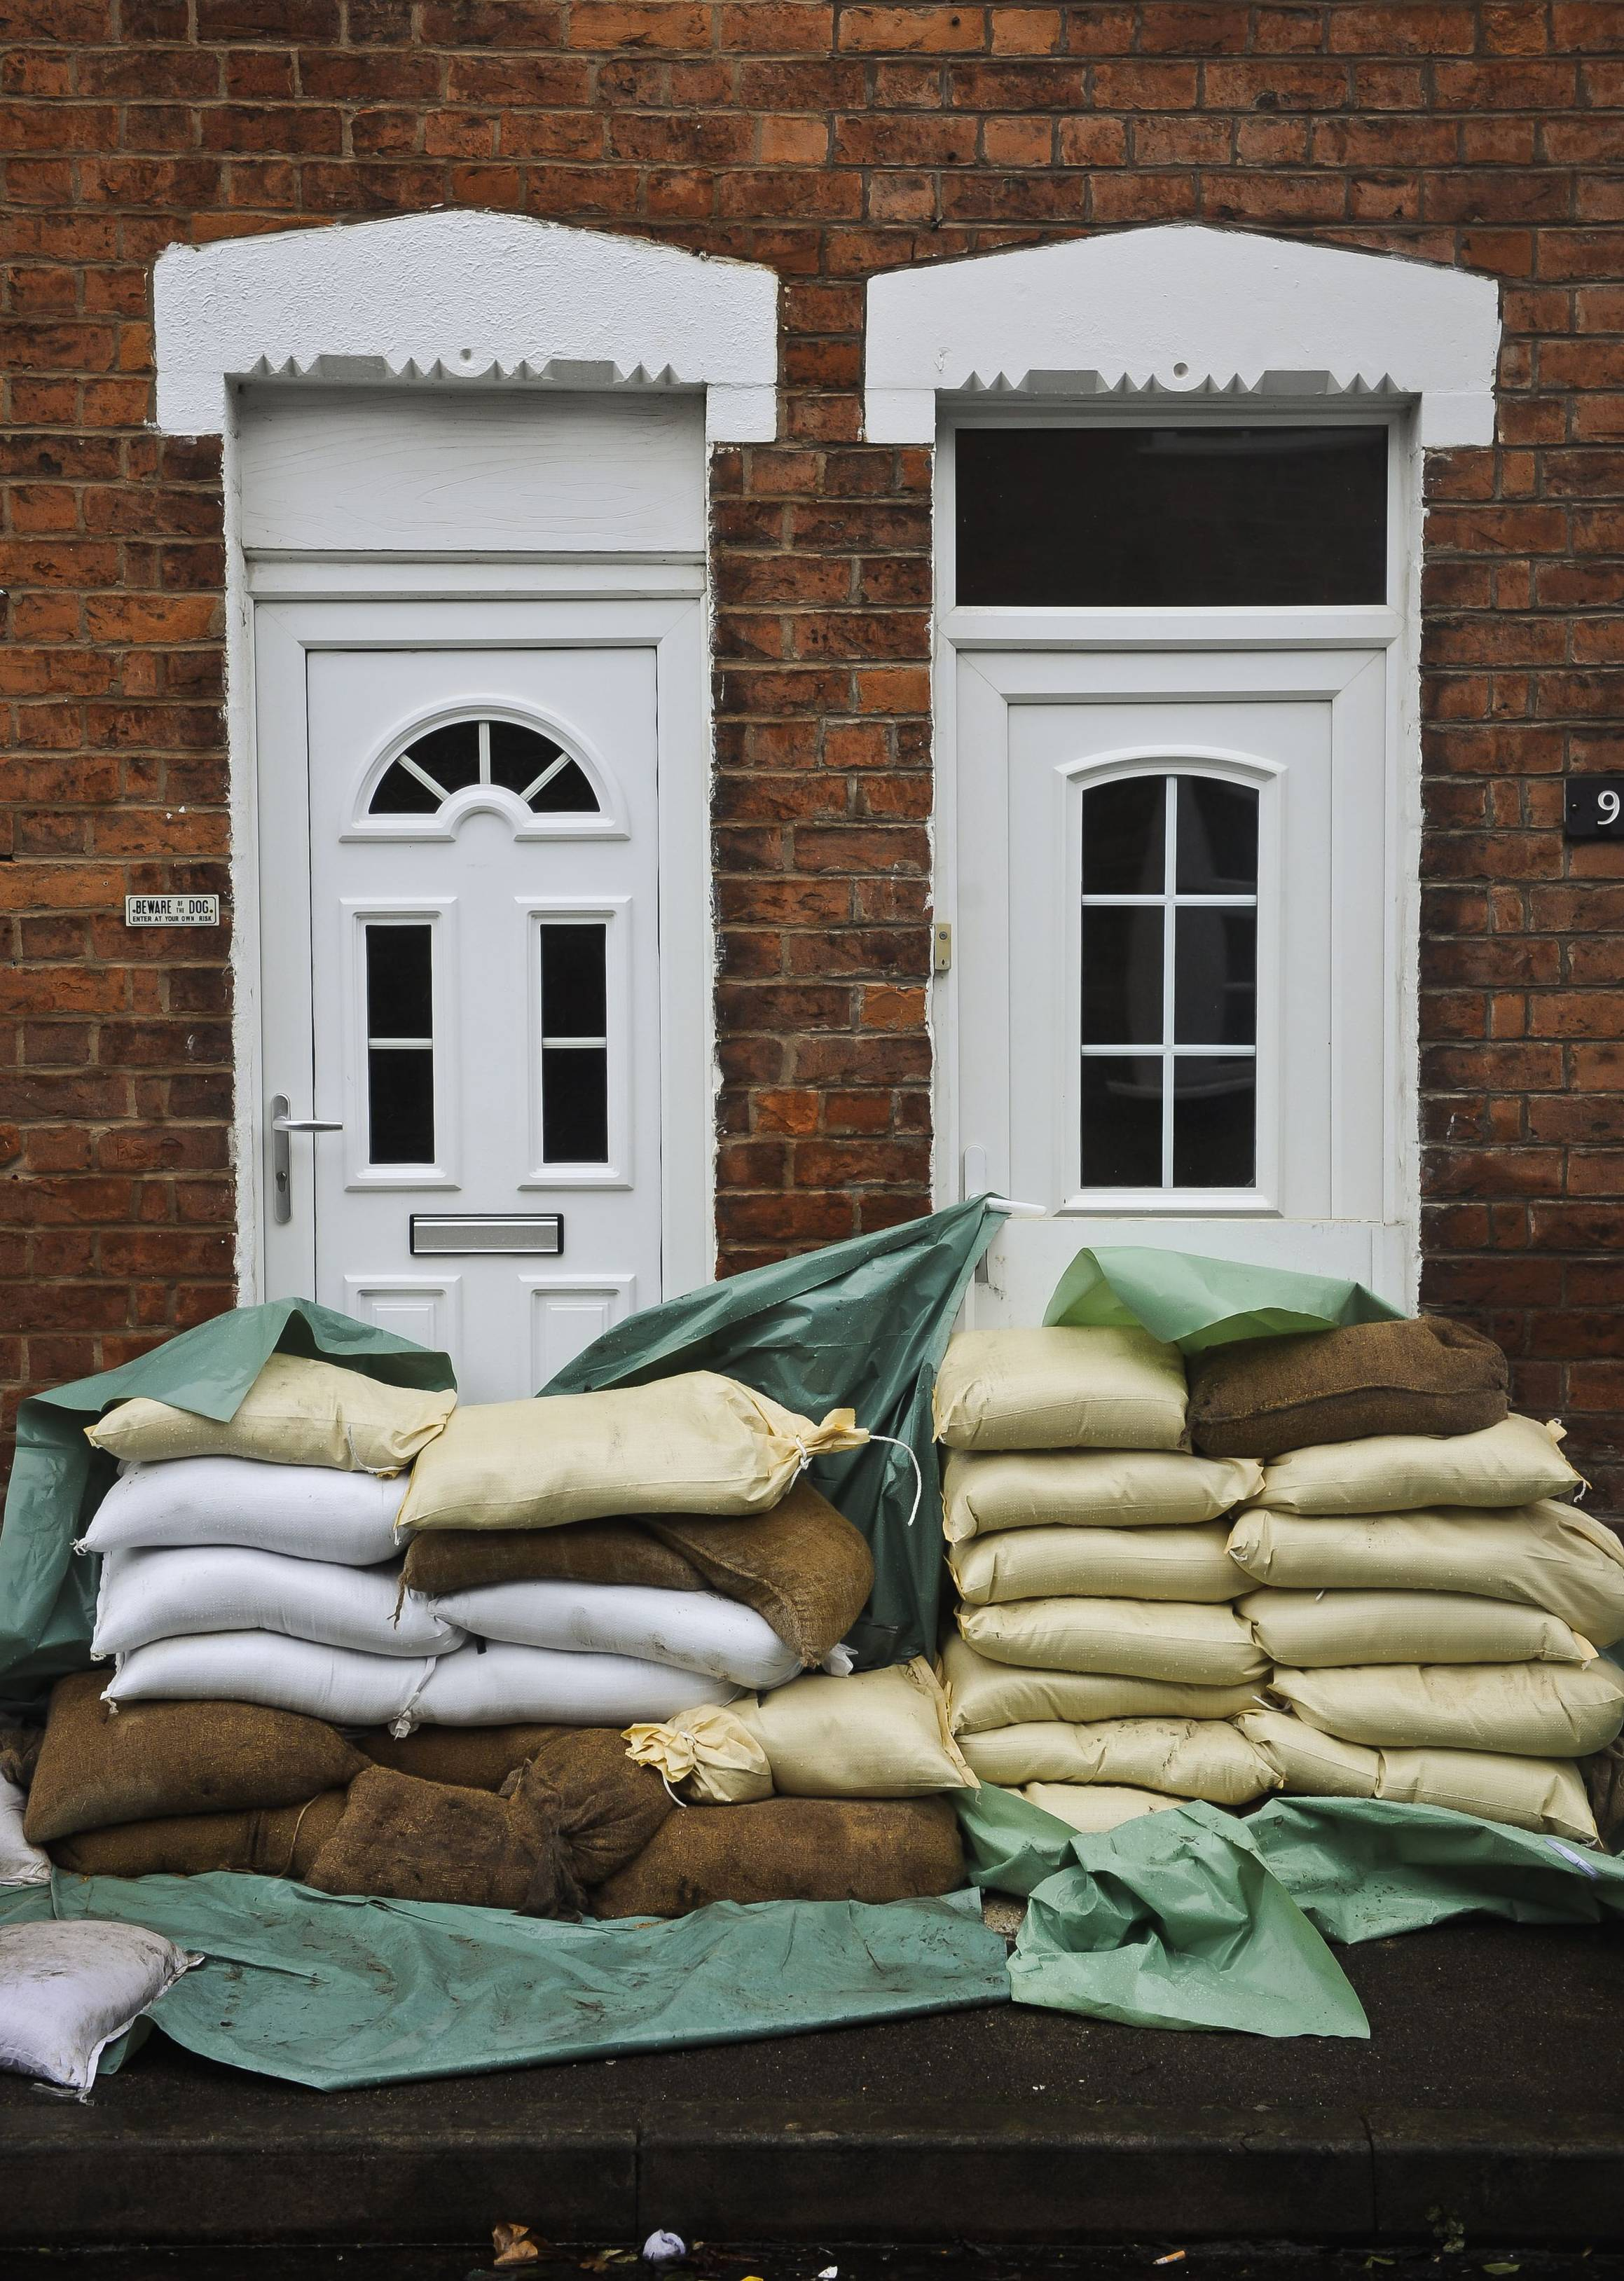 Sandbags form a levee protecting the front doors of homes in Gloucester, southwest England, as the region reacts to an increased flood threat alert Friday.